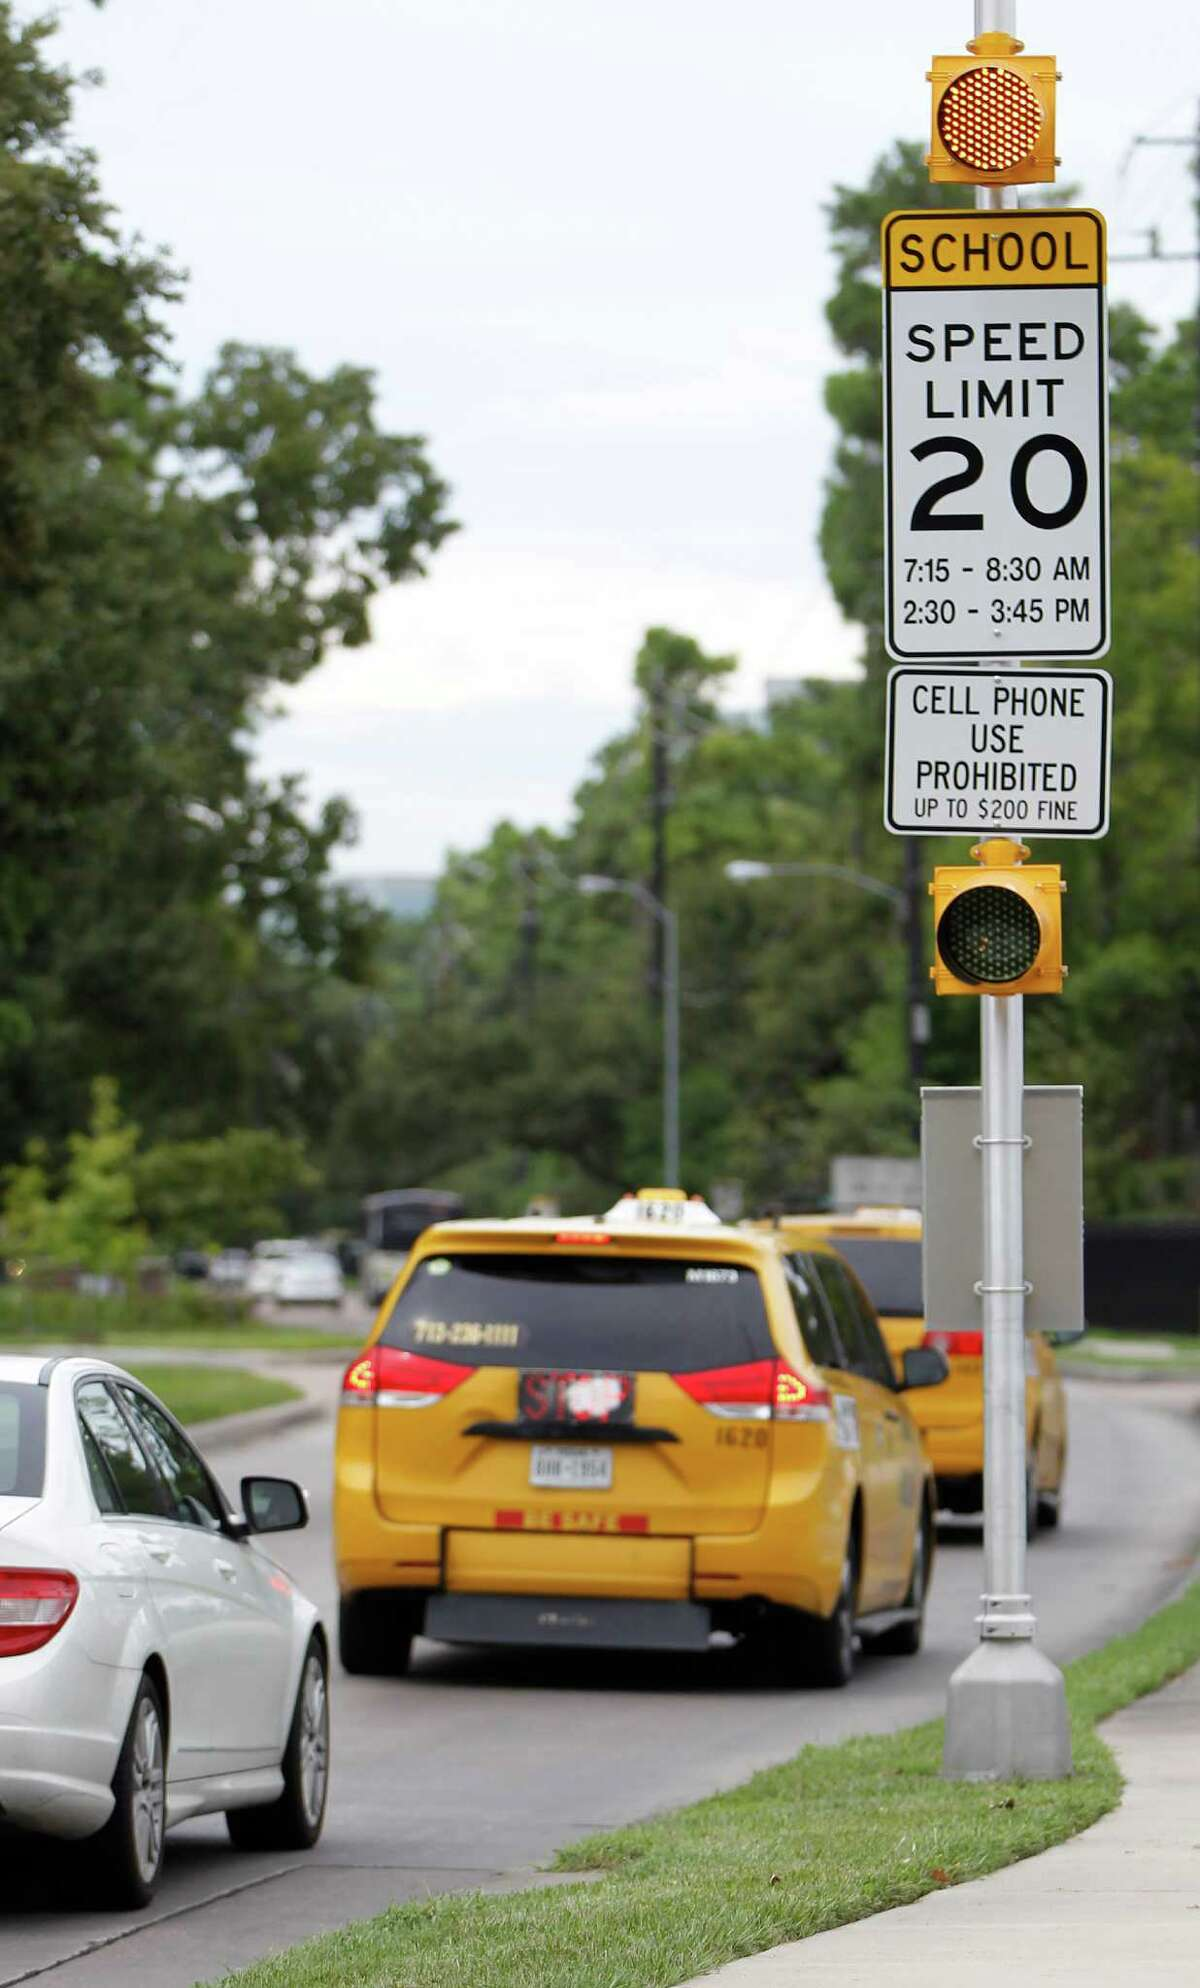 """Traffic passes a """"cell phone prohibited"""" sign on Gessner in front of Frostwood Elementary School on Tuesday, Sept. 1, 2015.A 2009 state law prohibits texting and hand-held cell phone use in school zones, but cities must post signs to enforce the ban."""